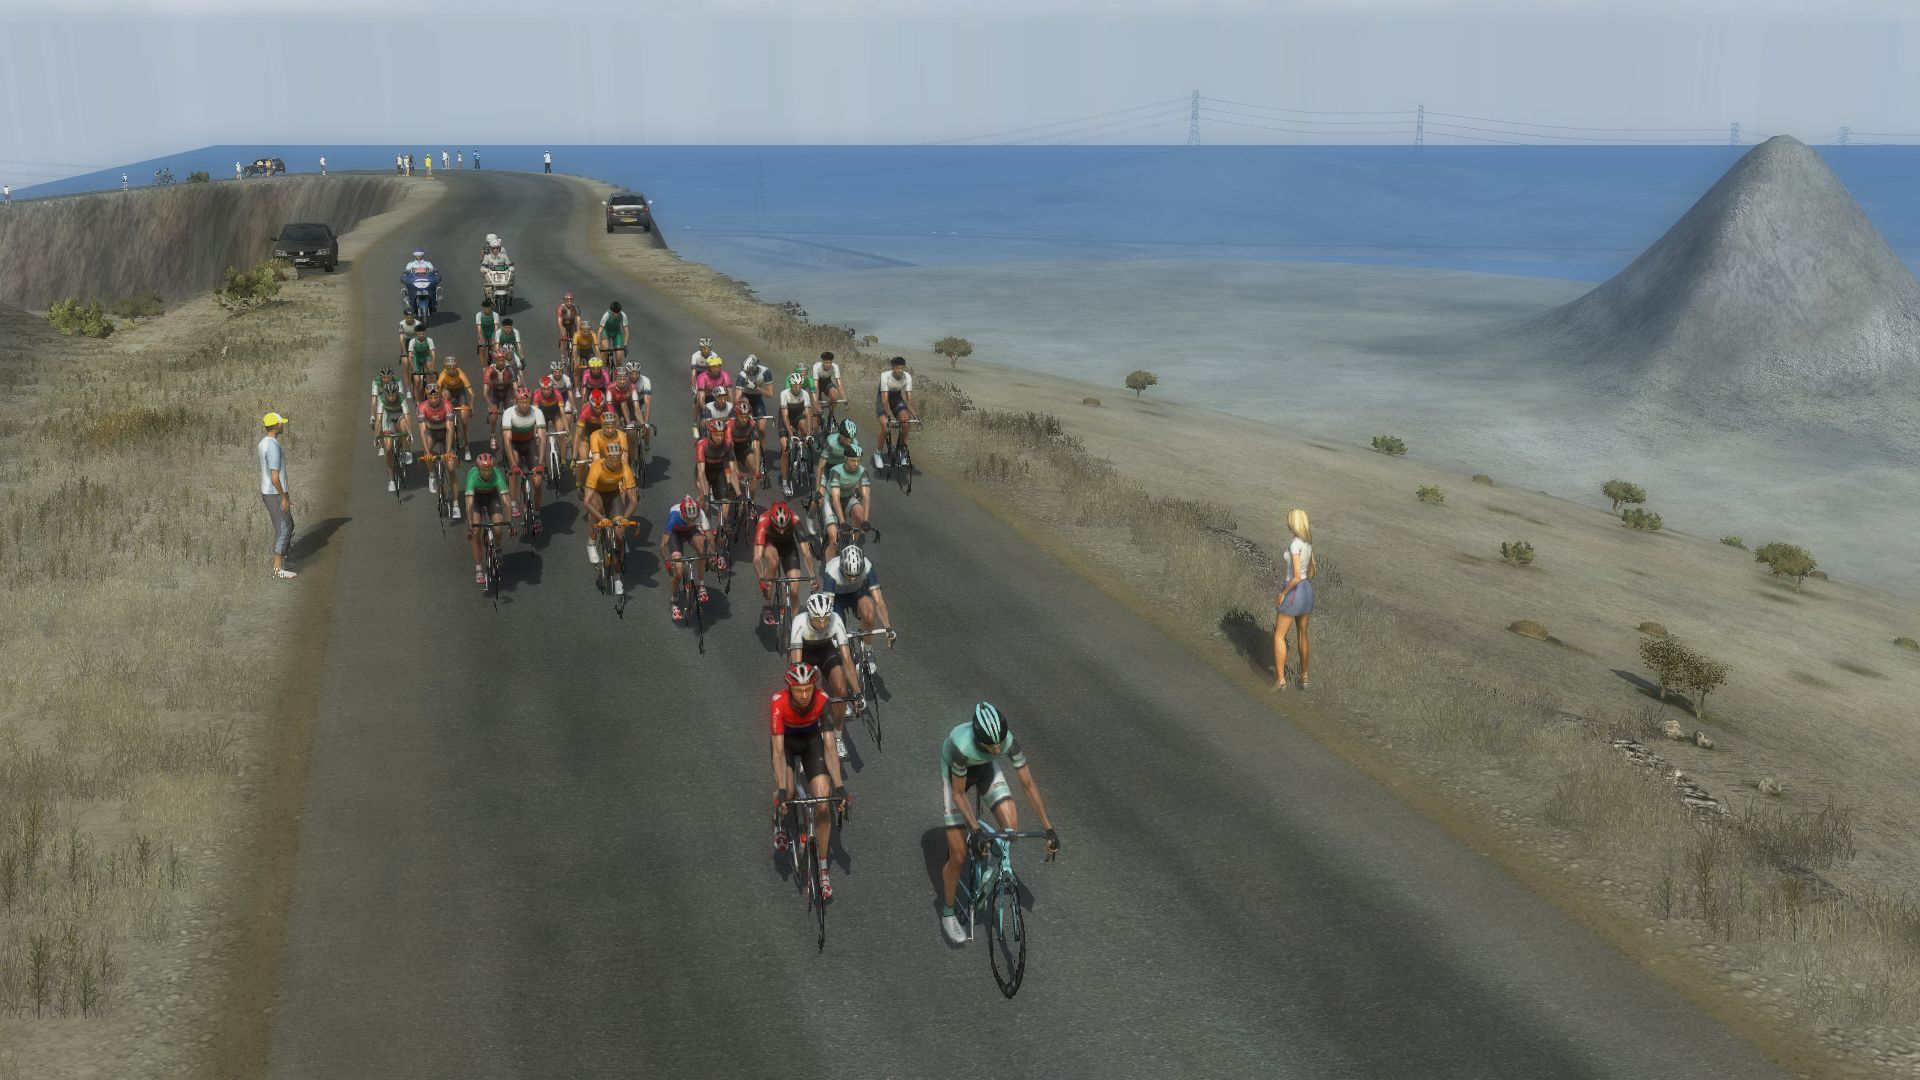 pcmdaily.com/images/mg/2019/Races/C2HC/Eritrea/TOES3%2013.jpg